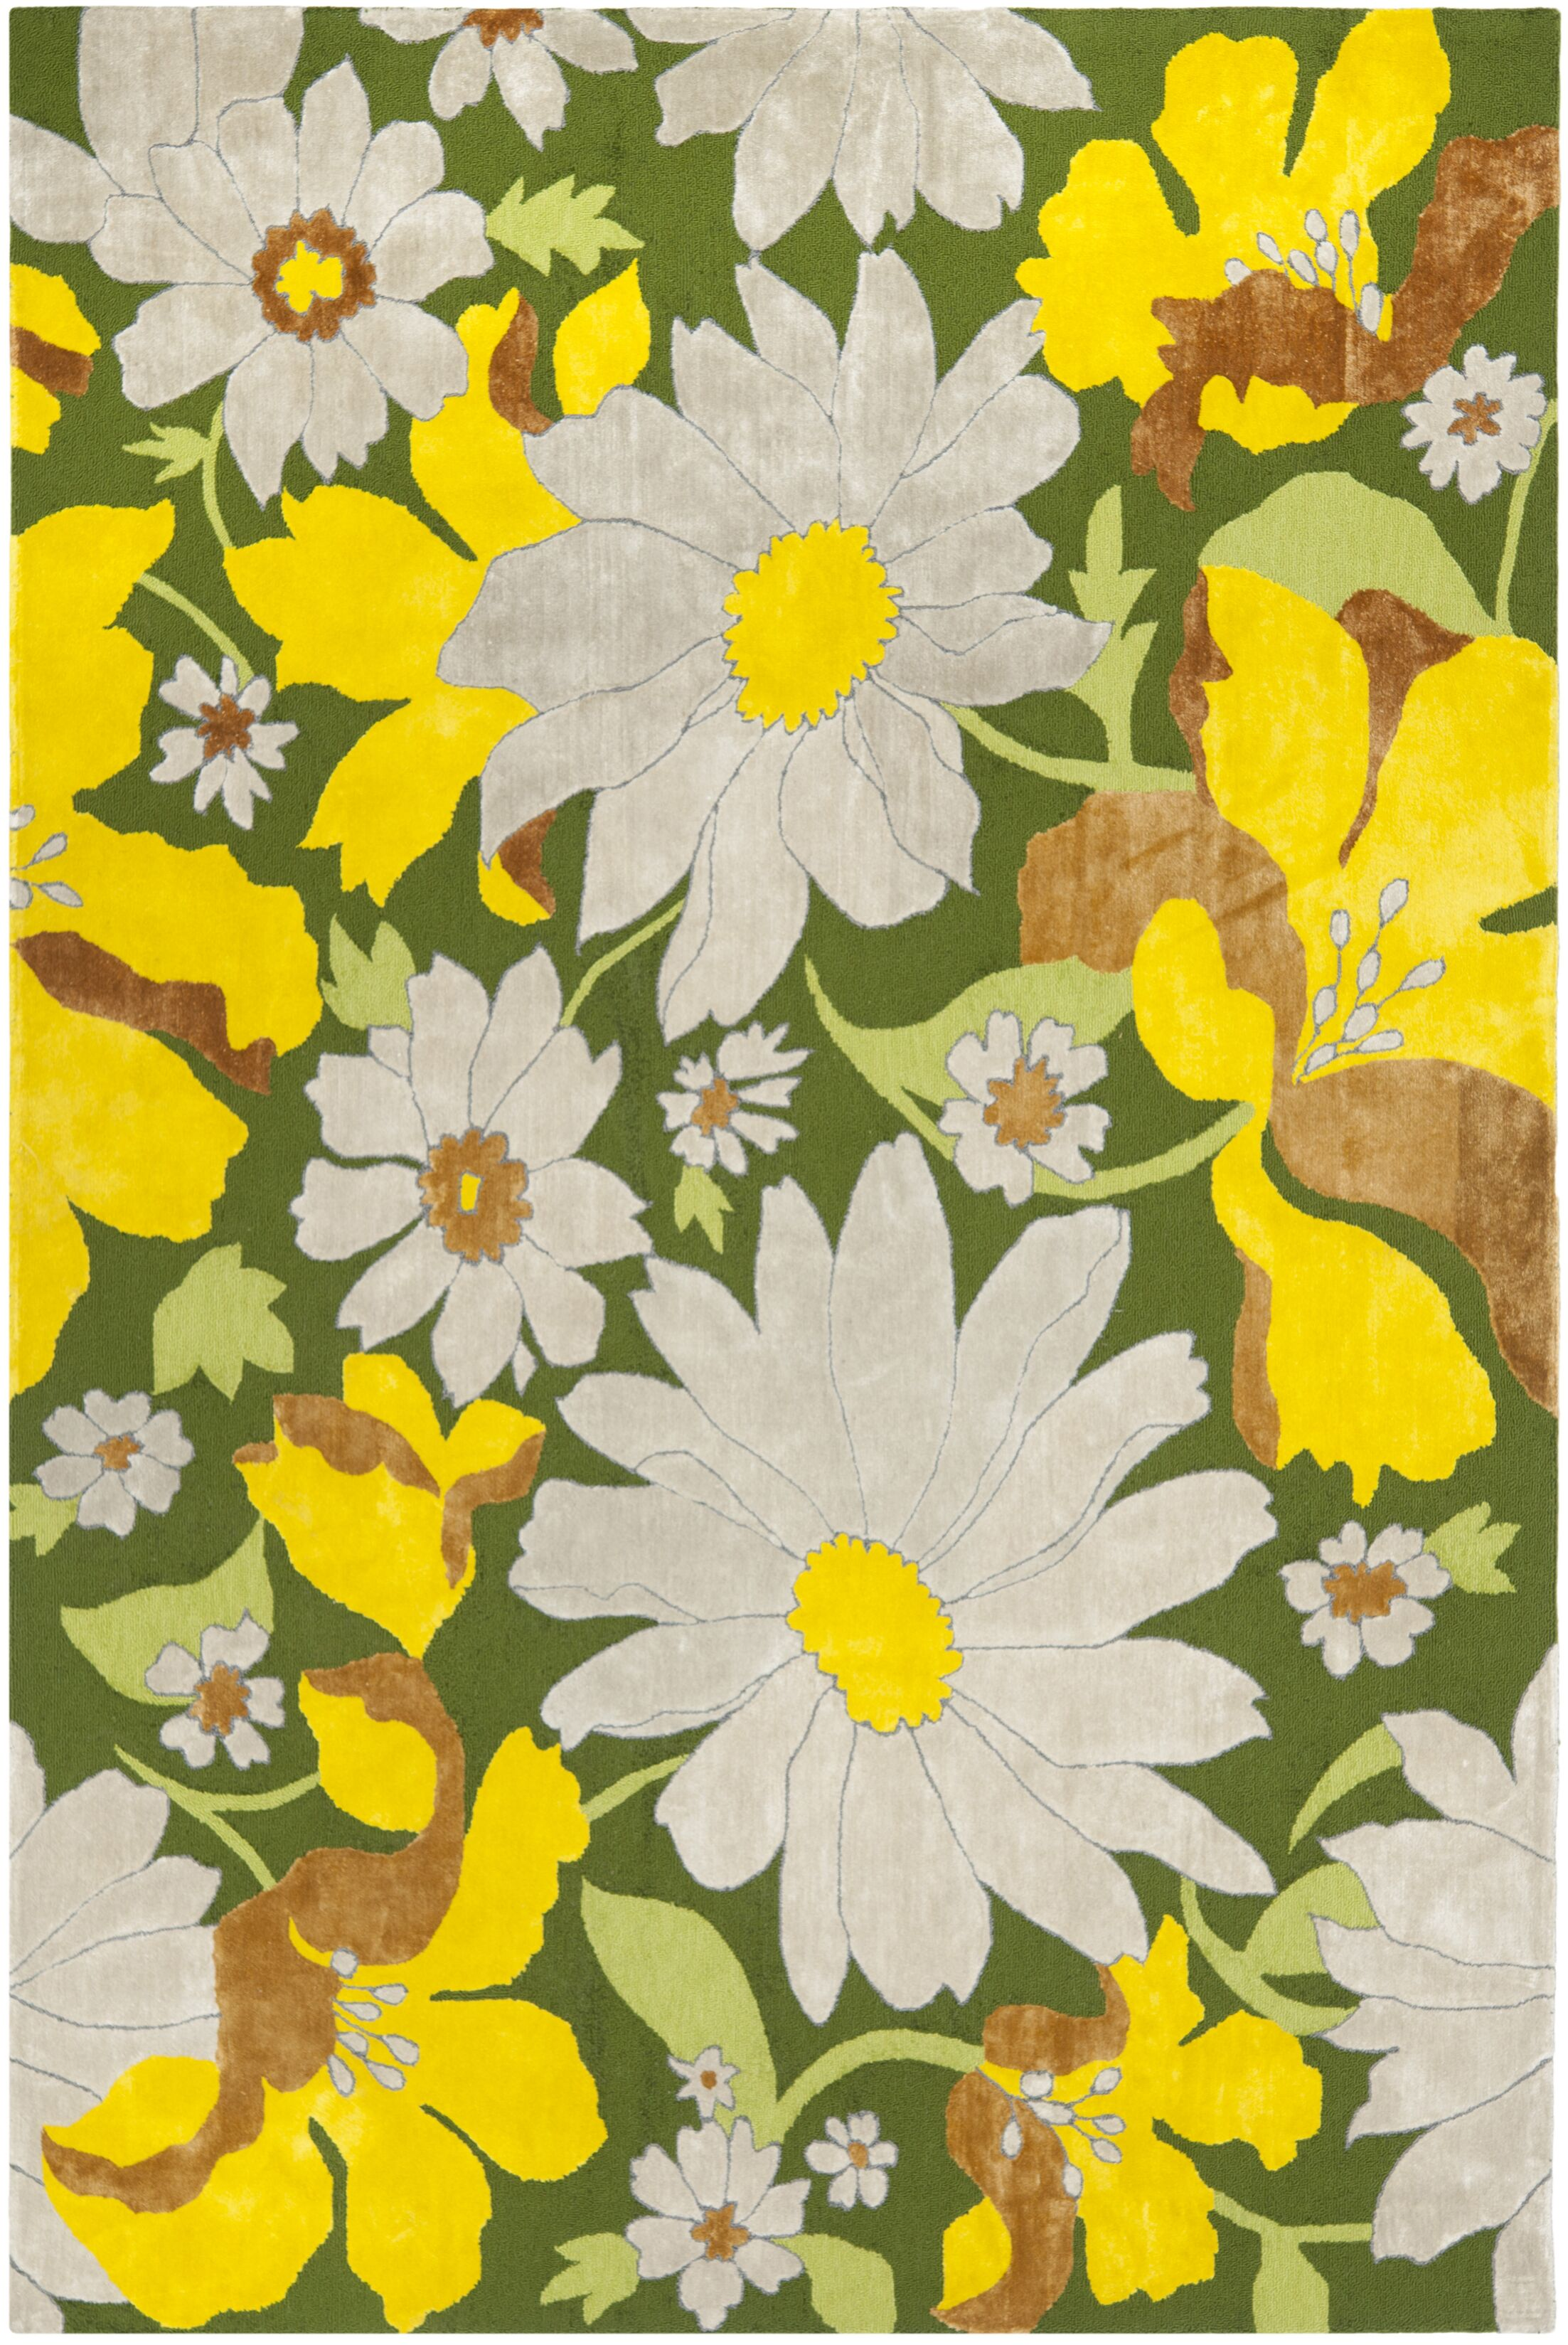 Pipers Yellow/Beige Area Rug Rug Size: Rectangle 8' x 10'